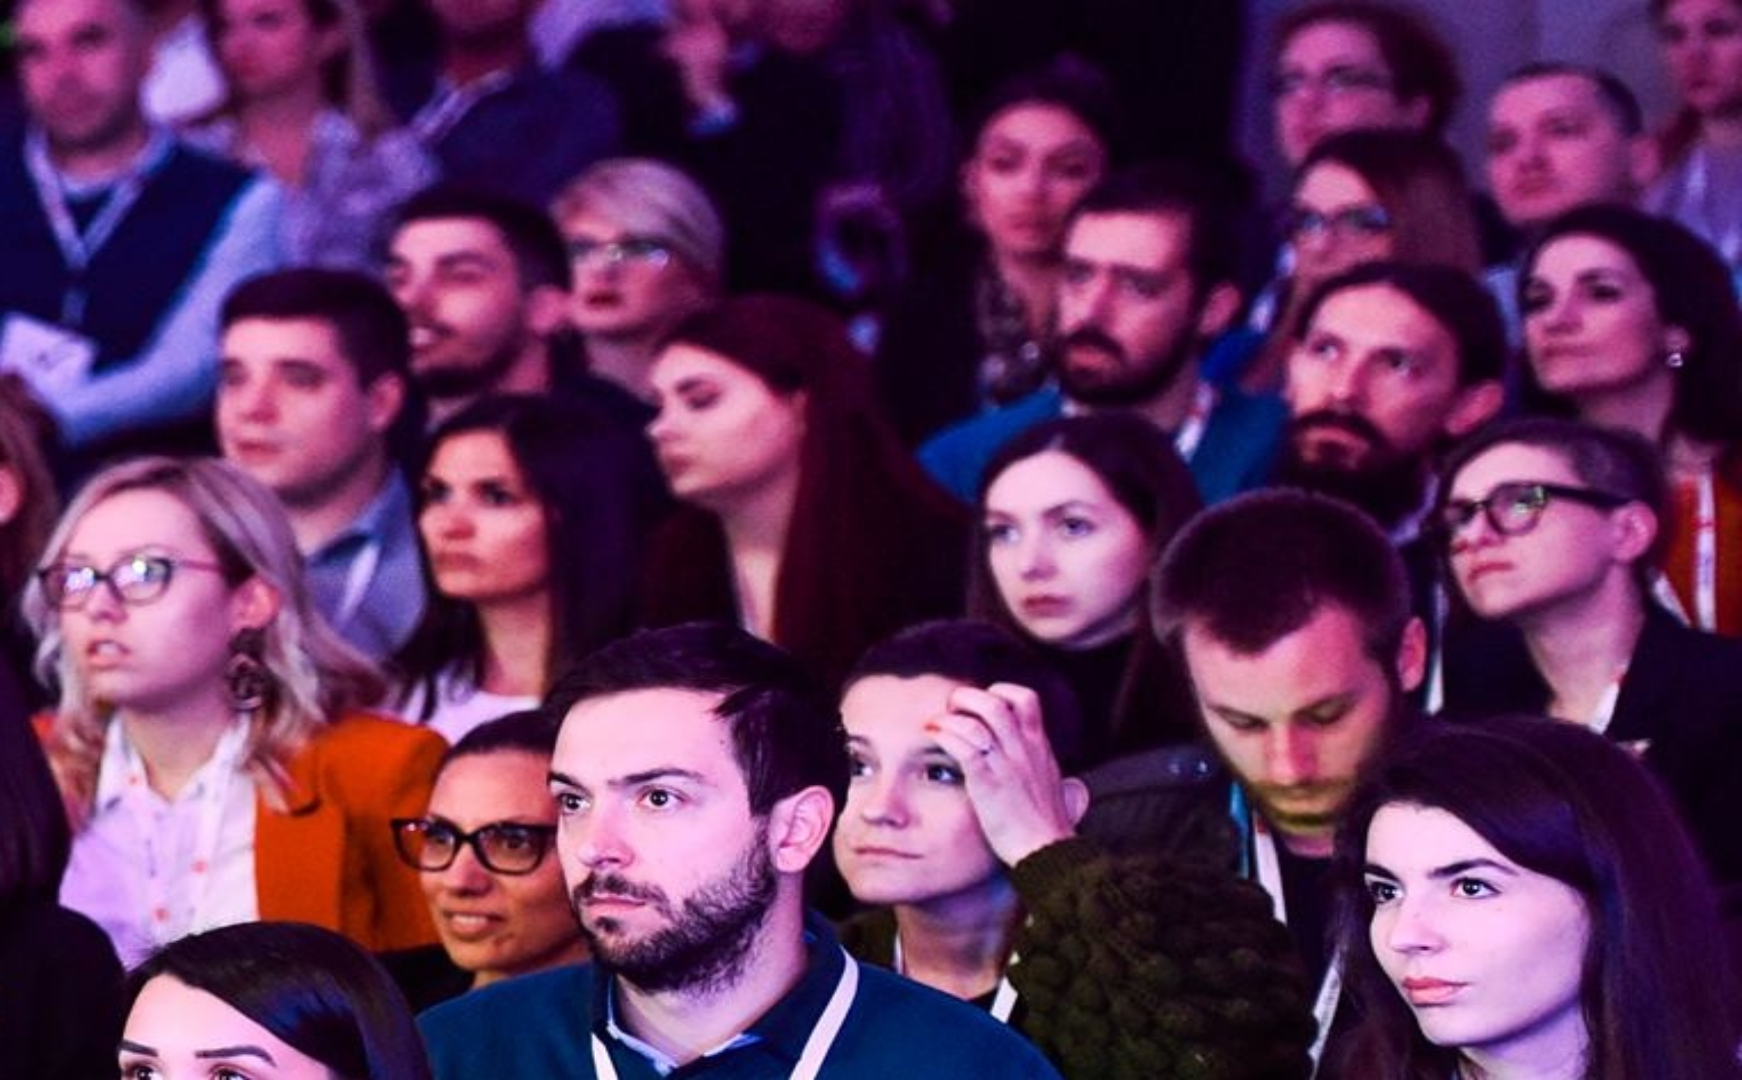 attending conferences in 2018